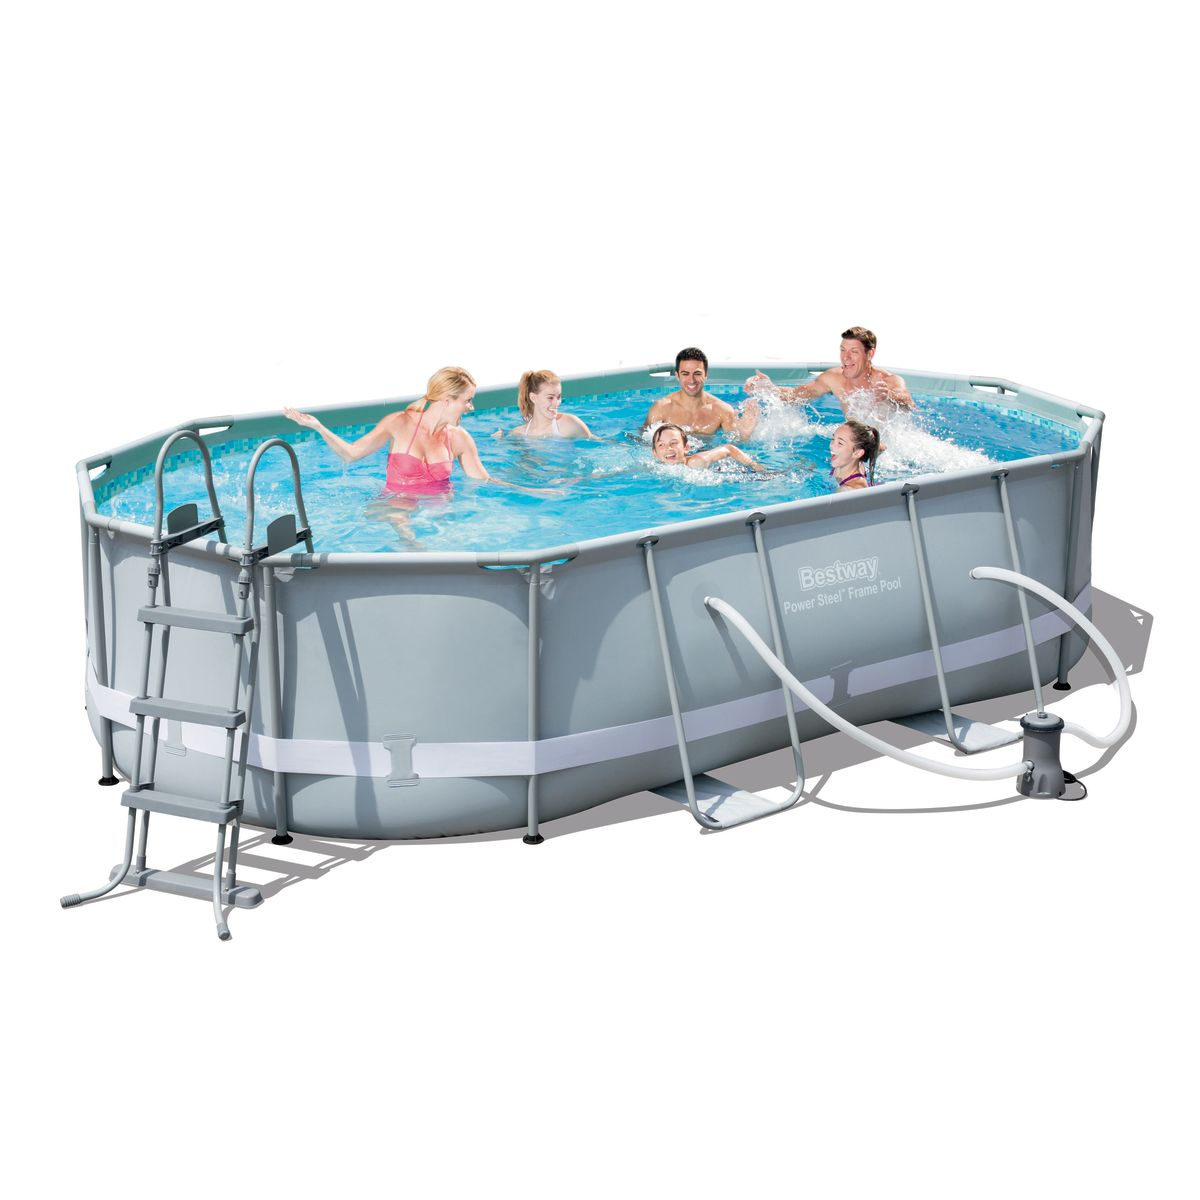 Cubre piscinas leroy merlin free panneau noisetier jany for Cubre vitroceramica leroy merlin